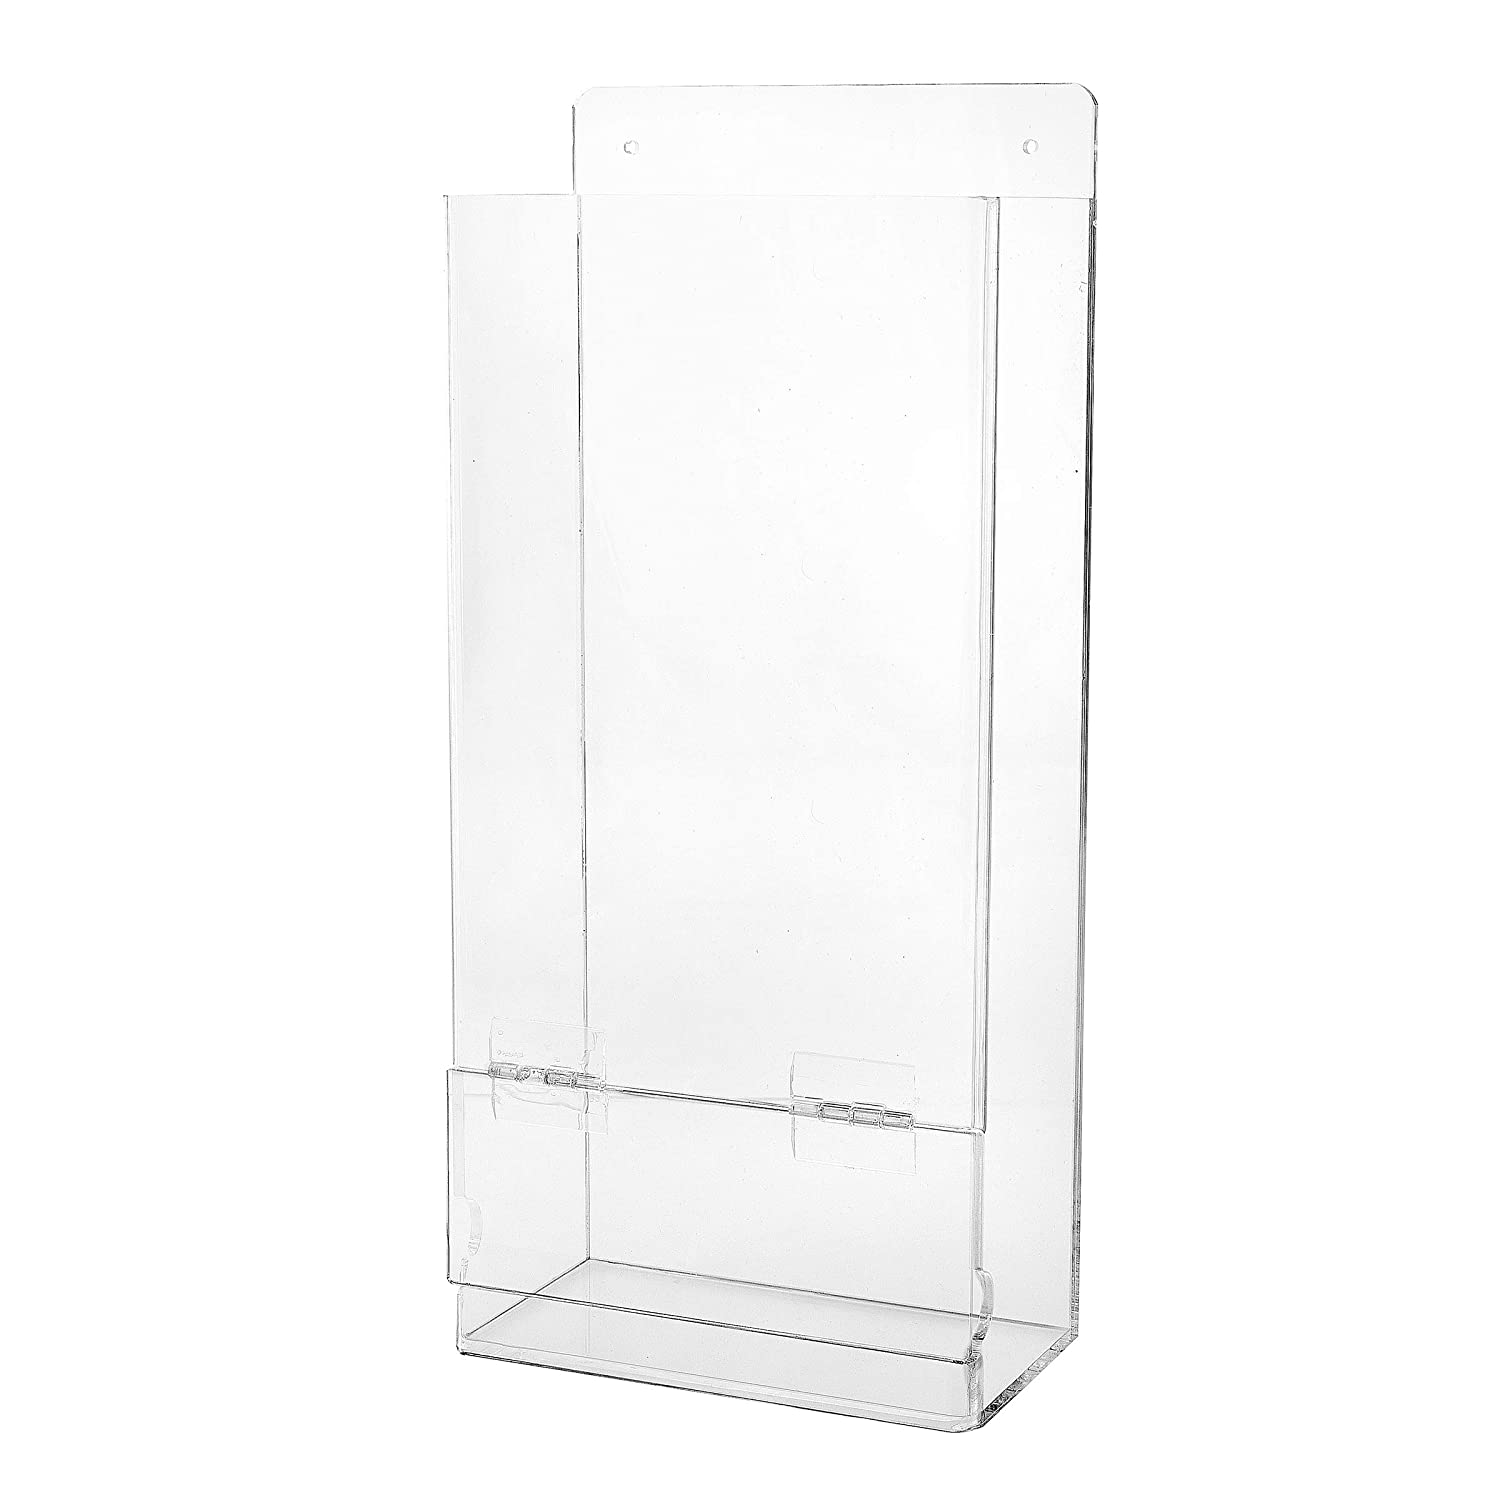 AdirOffice Hairnet & Shoe Cover Dispenser - Standing/Wall Mount Acrylic Container for Gloves, Hair Net & Covers - Laboratory, Kitchen & Restaurant Plastic Organizing Storage (17.5 x 8 x 4)